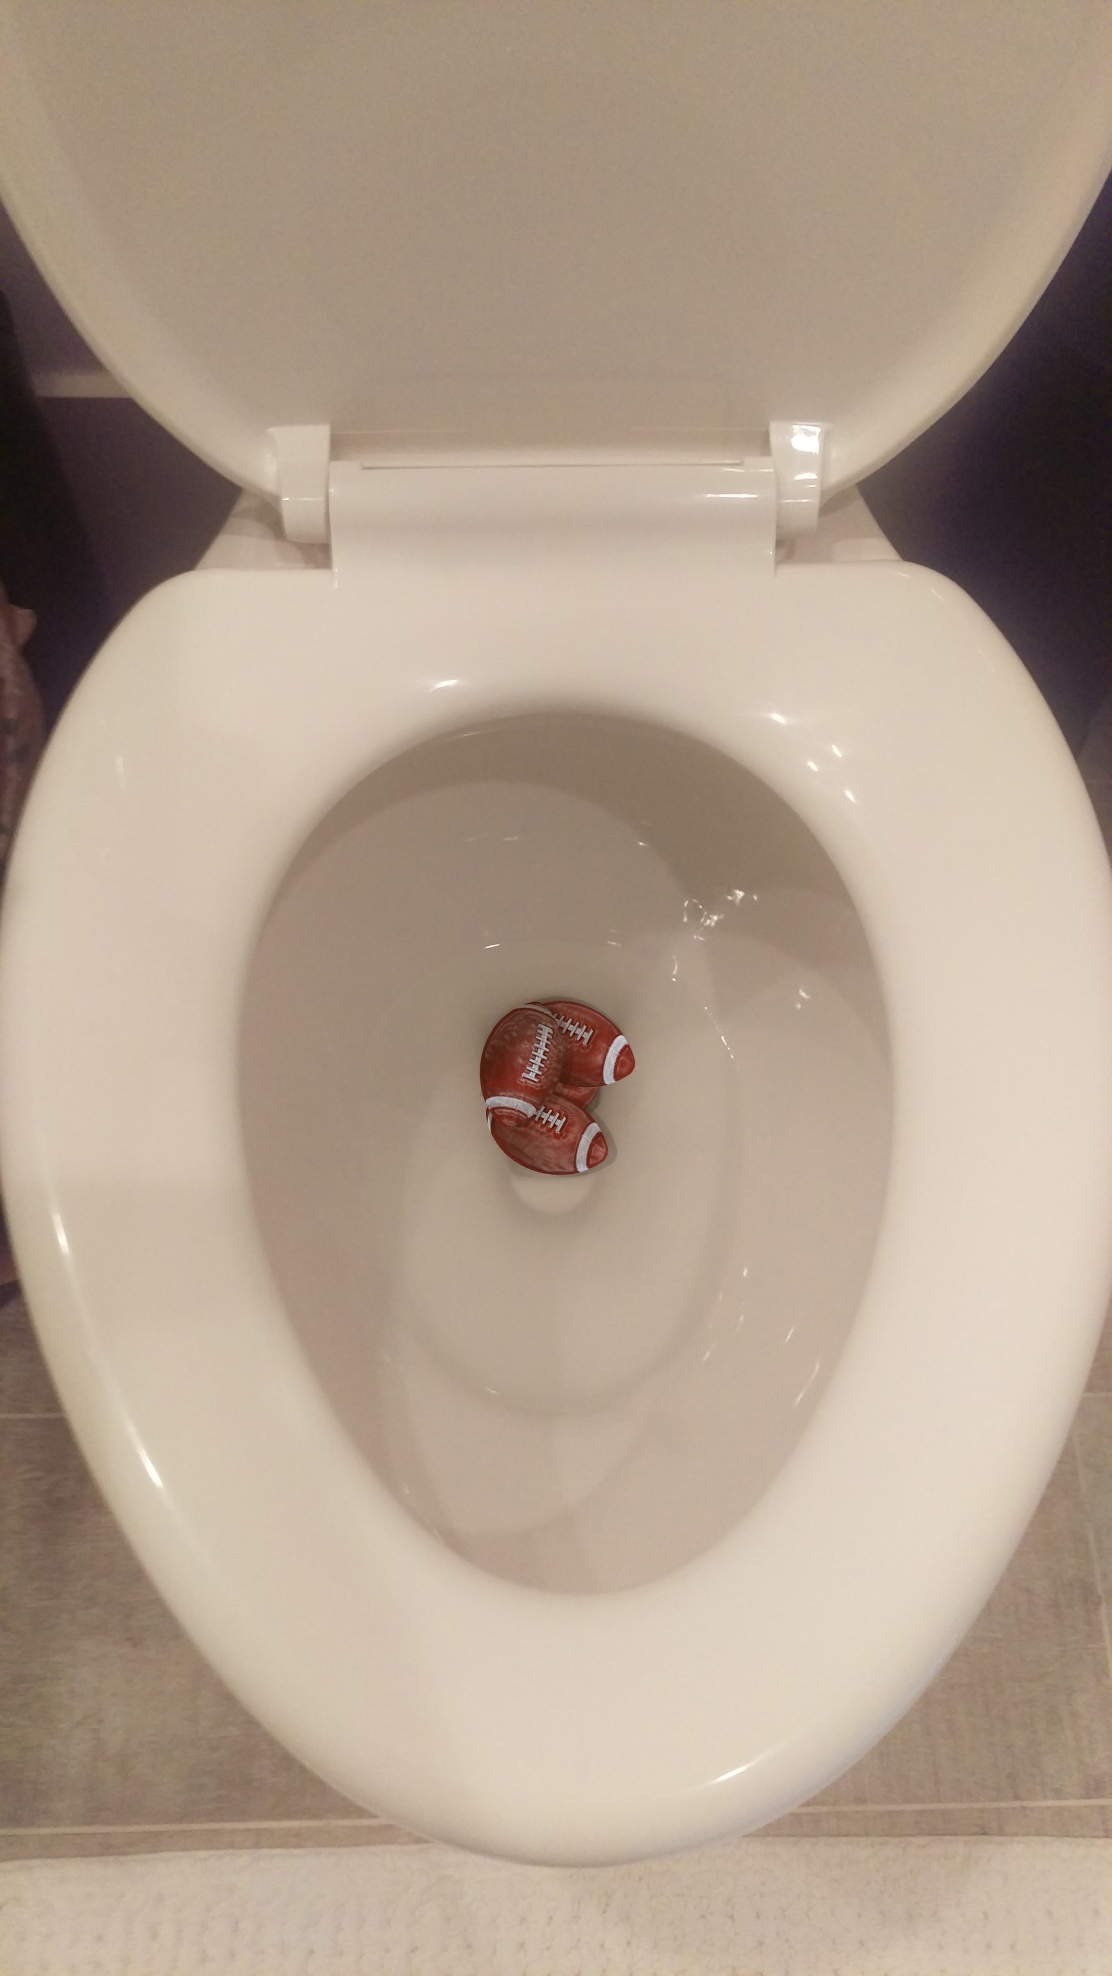 4. Clog his toilet with mini footballs